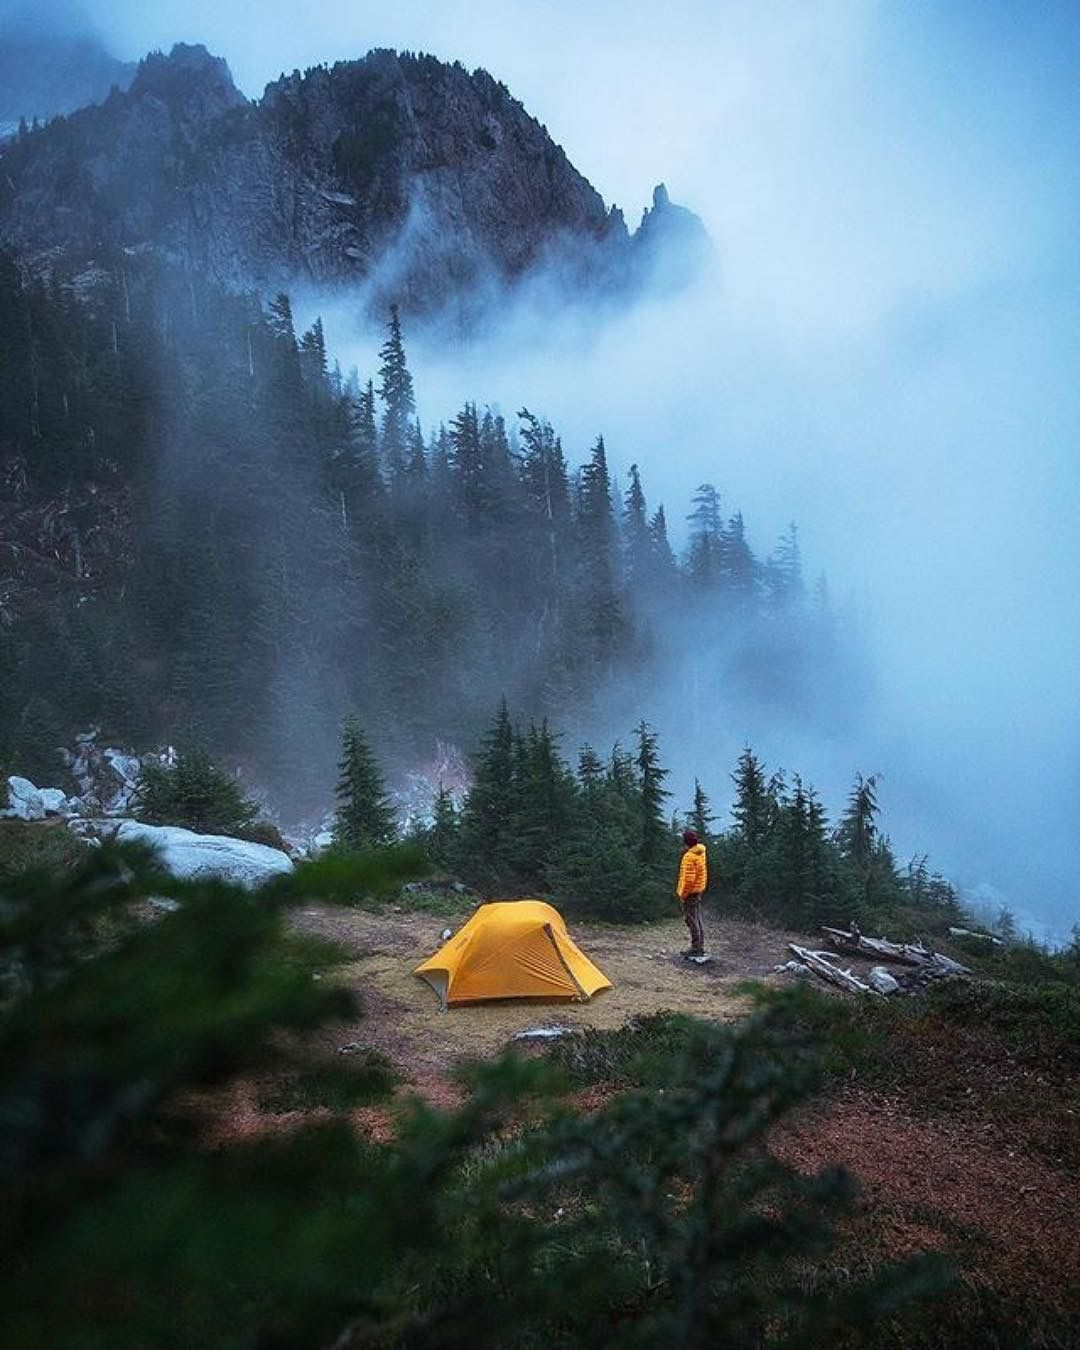 Brilliantphotos Awesomeimages Webdesign Photography Creativephotography Artphotography Insp Camping Photography Outdoor Camping Outdoors Adventure Hd wallpaper tent camping forest fog